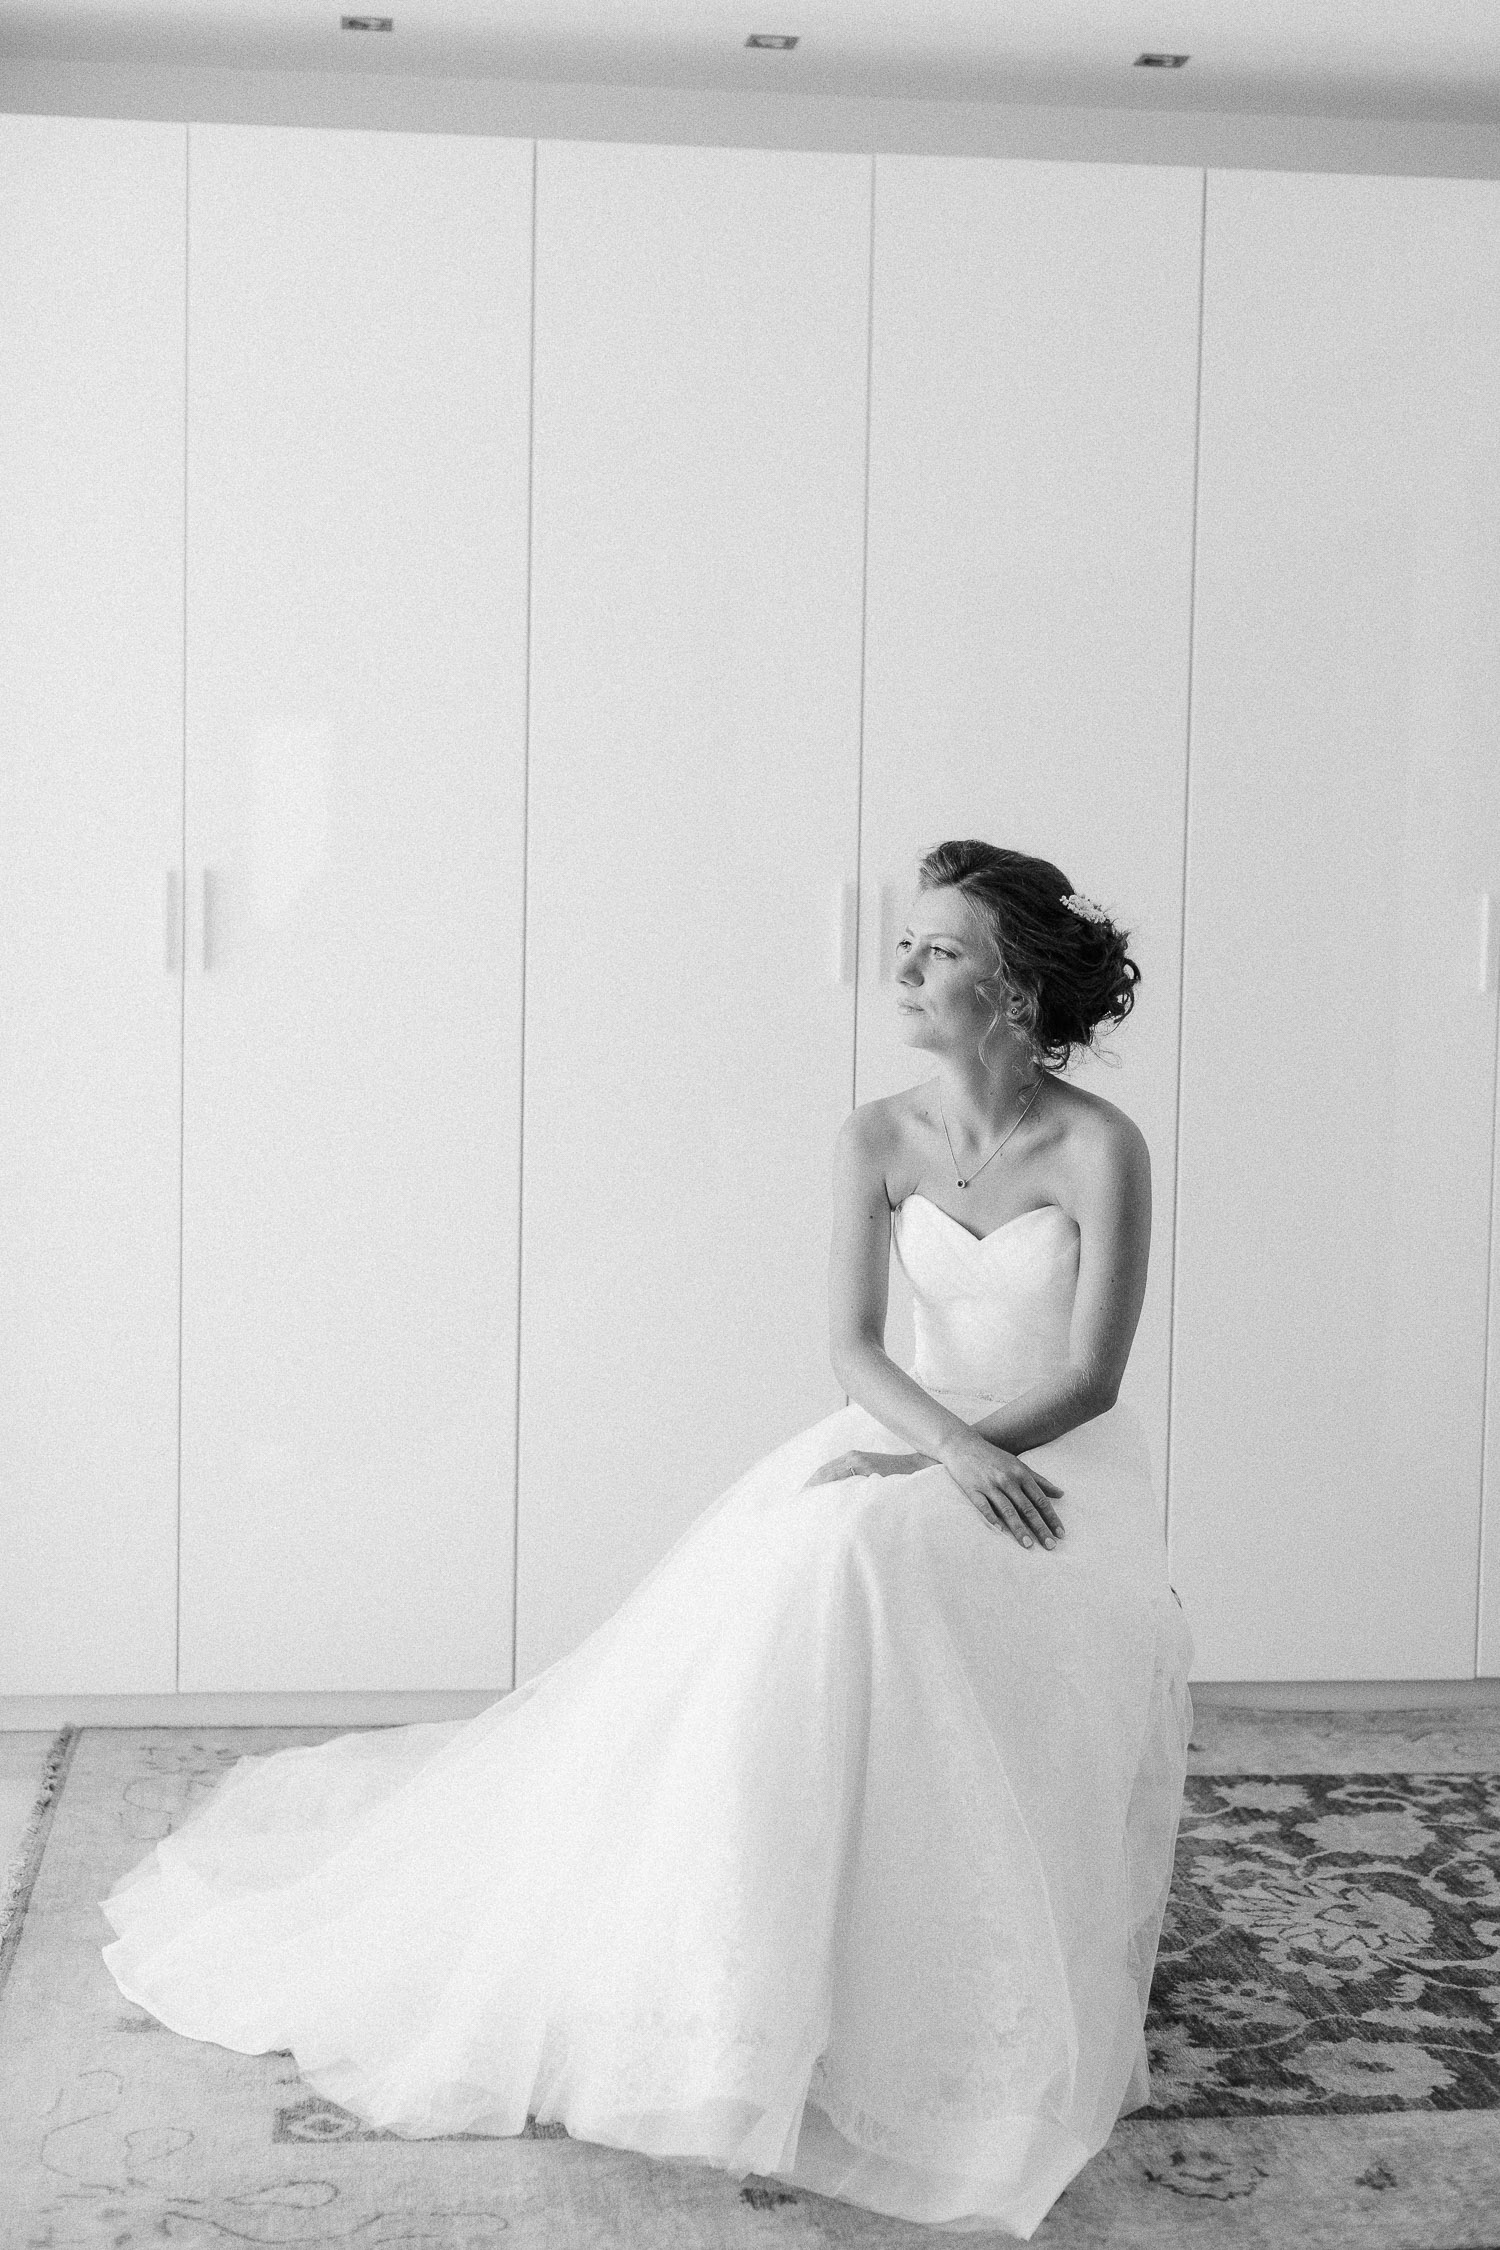 Black and white portrait of a bride before the wedding ceremony in Corfu